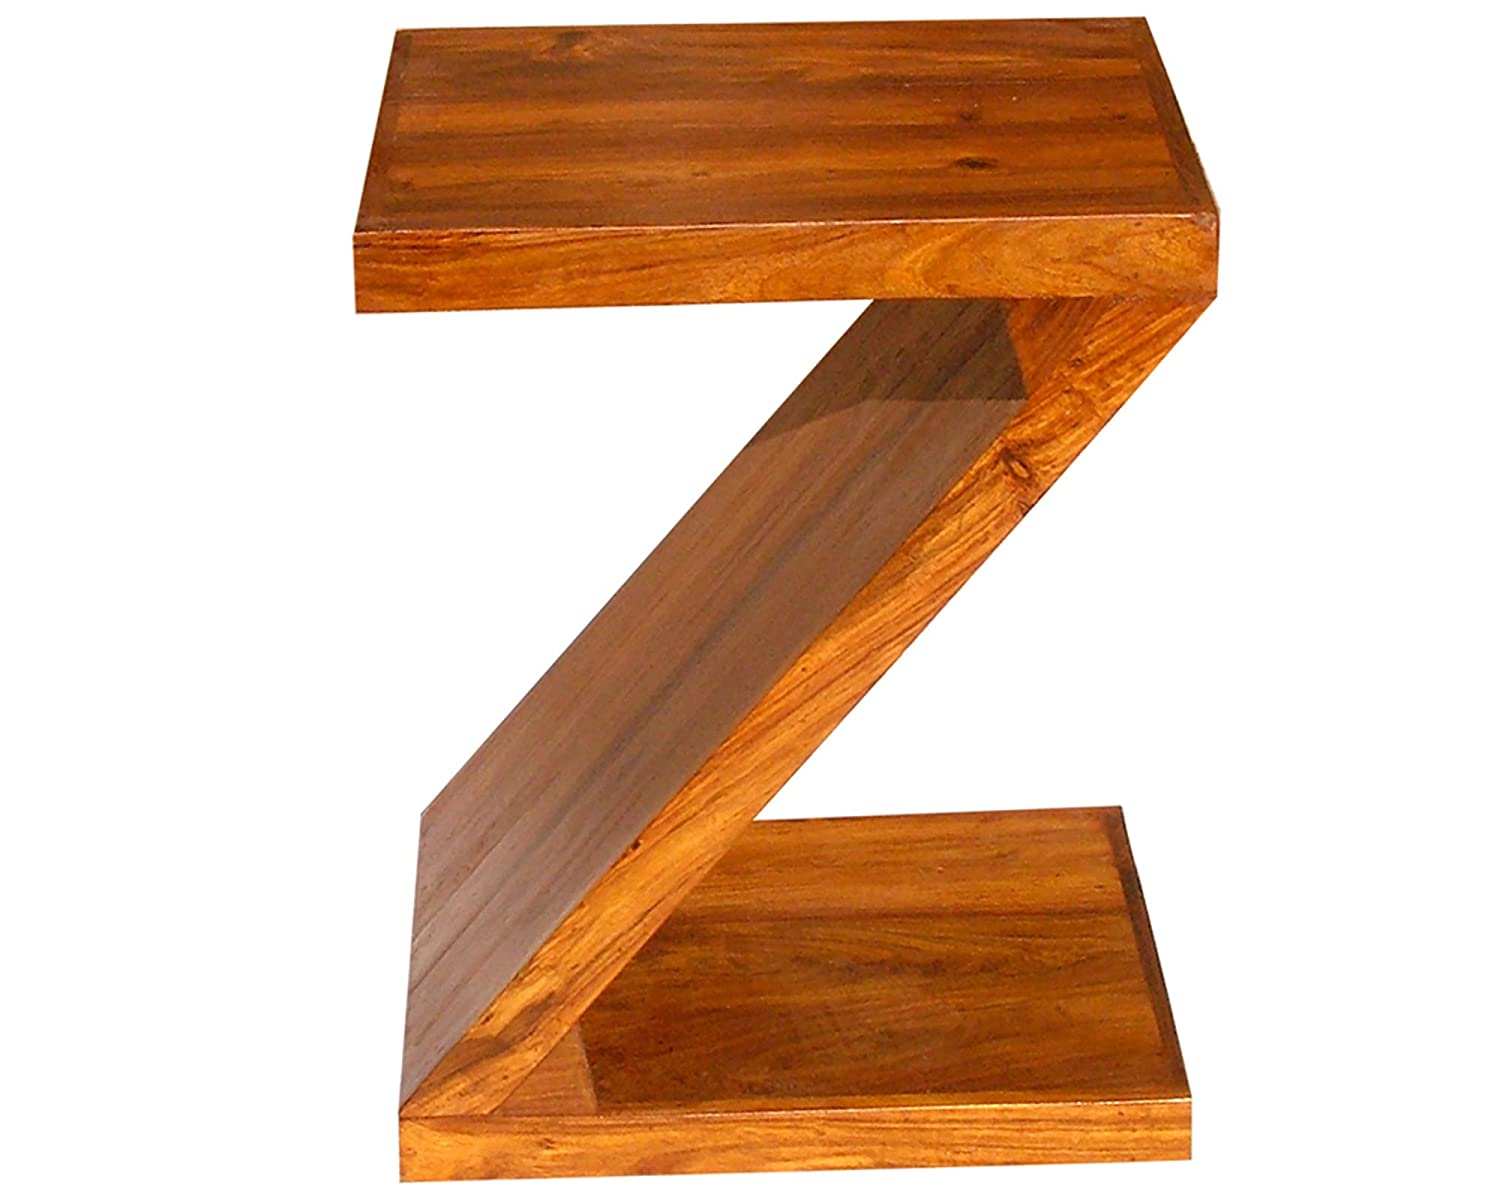 Togam Furniture Z Shape Bedside End Tables for Living Room (Honey Brown Finish) Specially Designed Quality Certified Furniture For Home Living Room Bedroom Guest Room And Corporate Office Collection